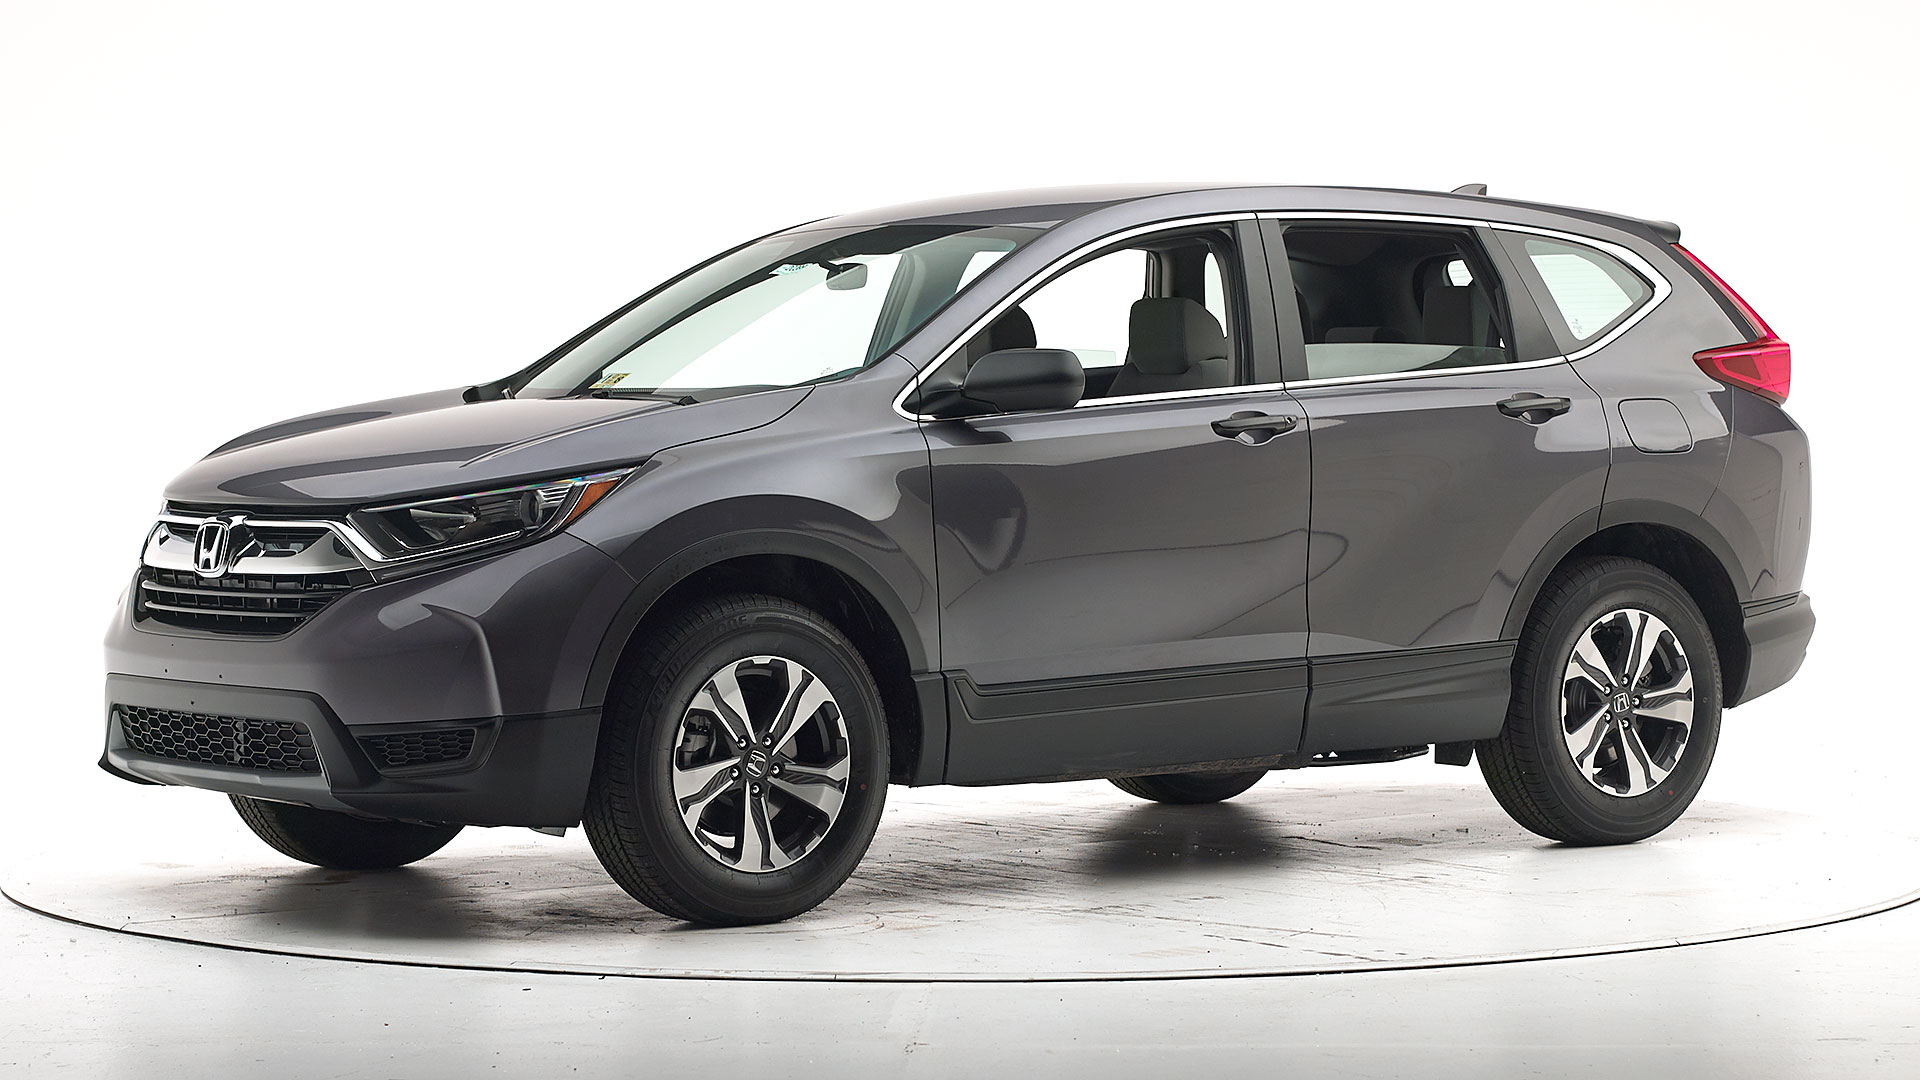 2019 Honda CR-V 4-door SUV